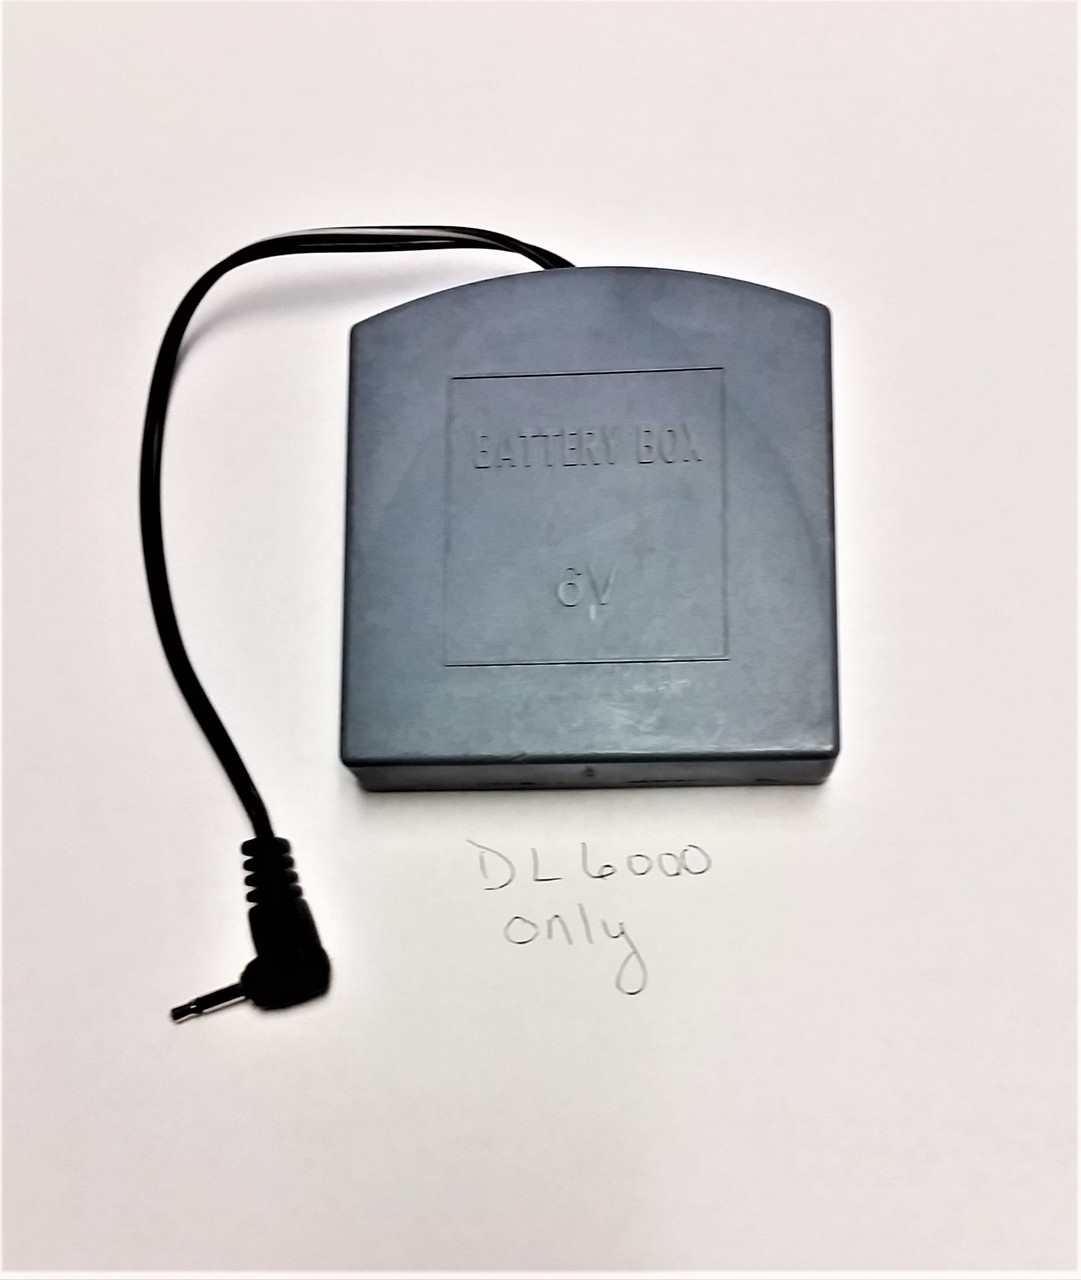 Battery Box for Amsec safes equipped with DL6000 locks only.